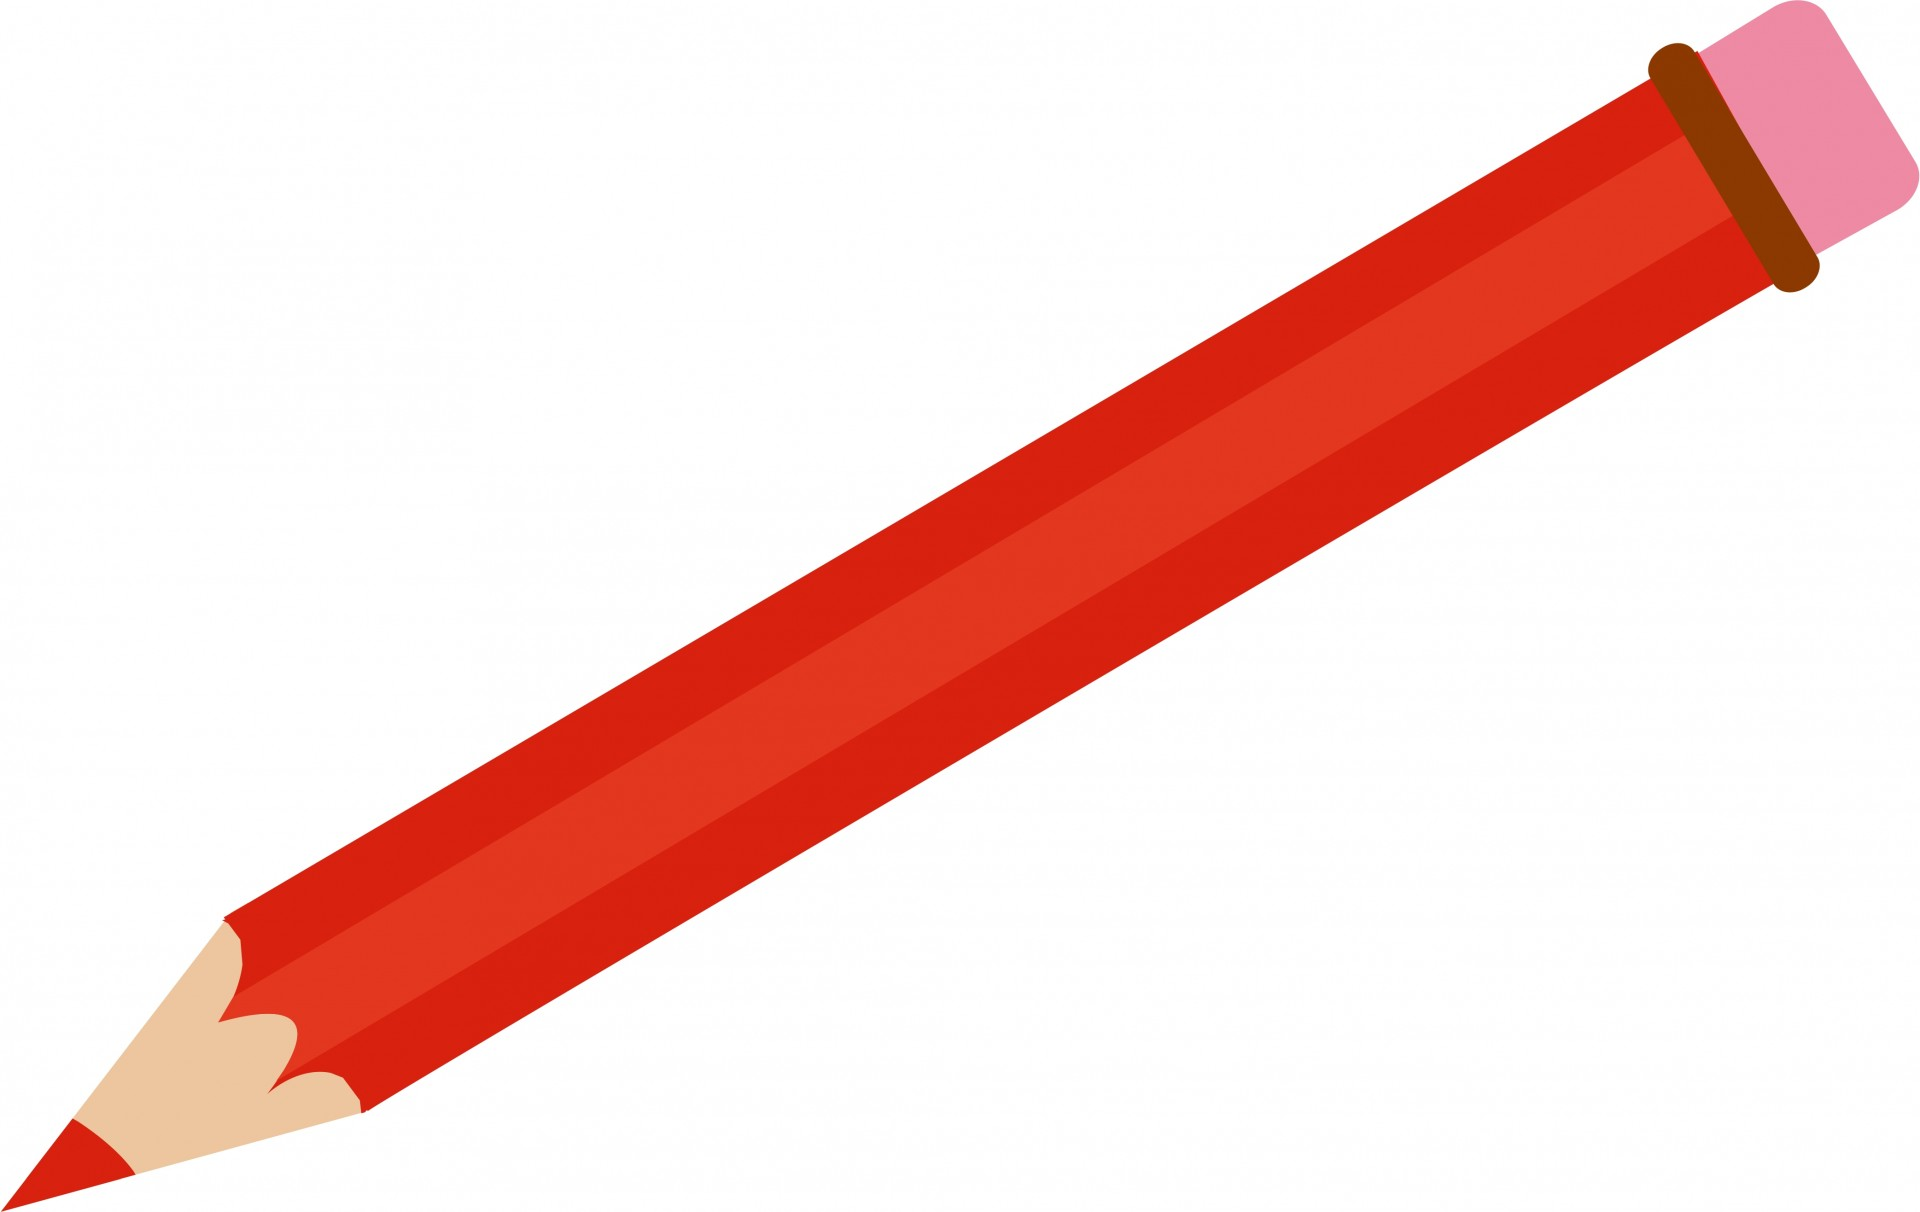 Red Pencil Clipart-Red Pencil Clipart-18